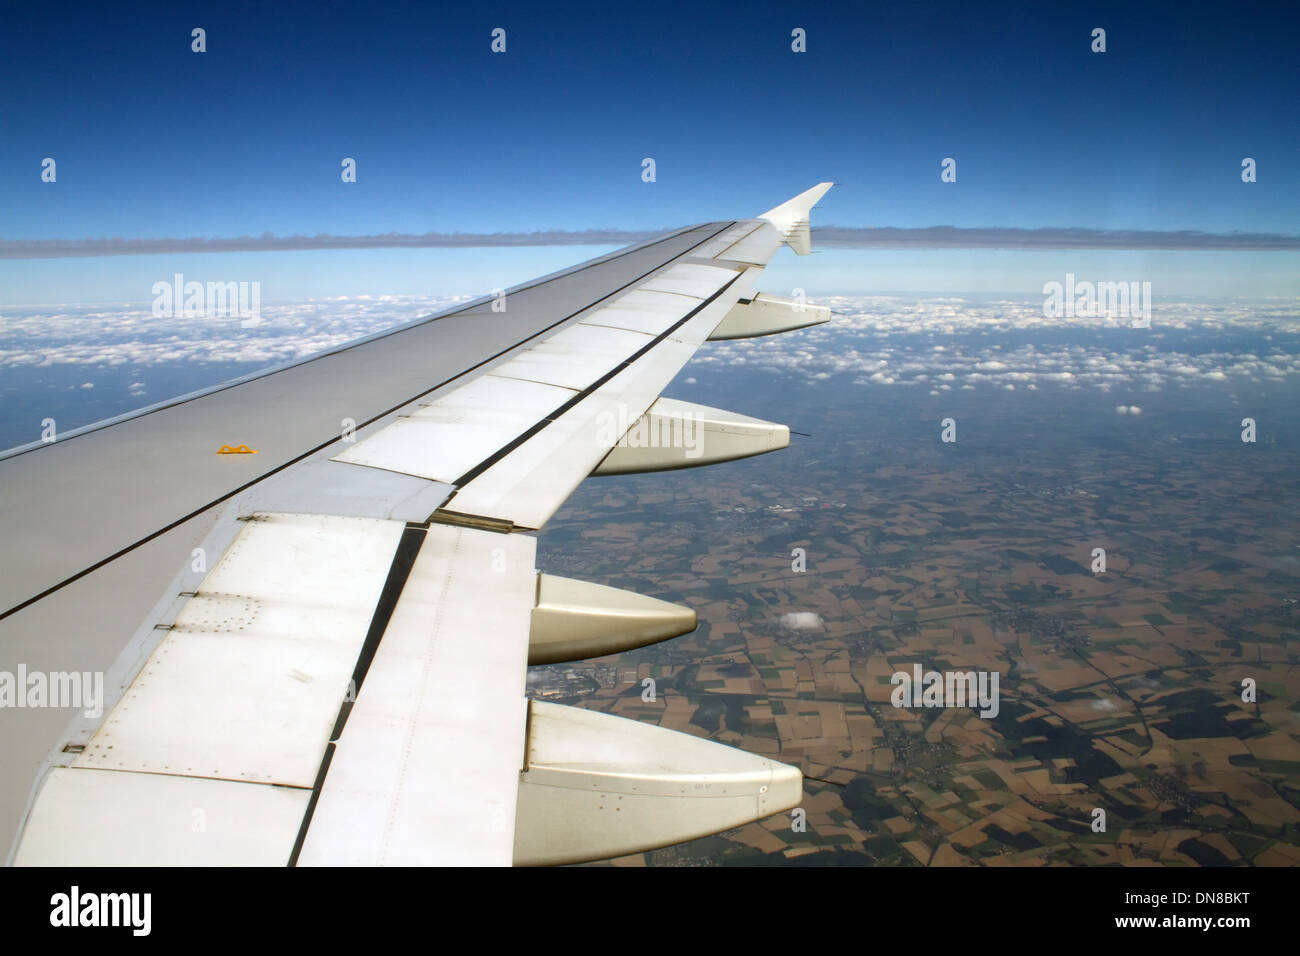 Airplaine view with the airplane wing. - Stock Image